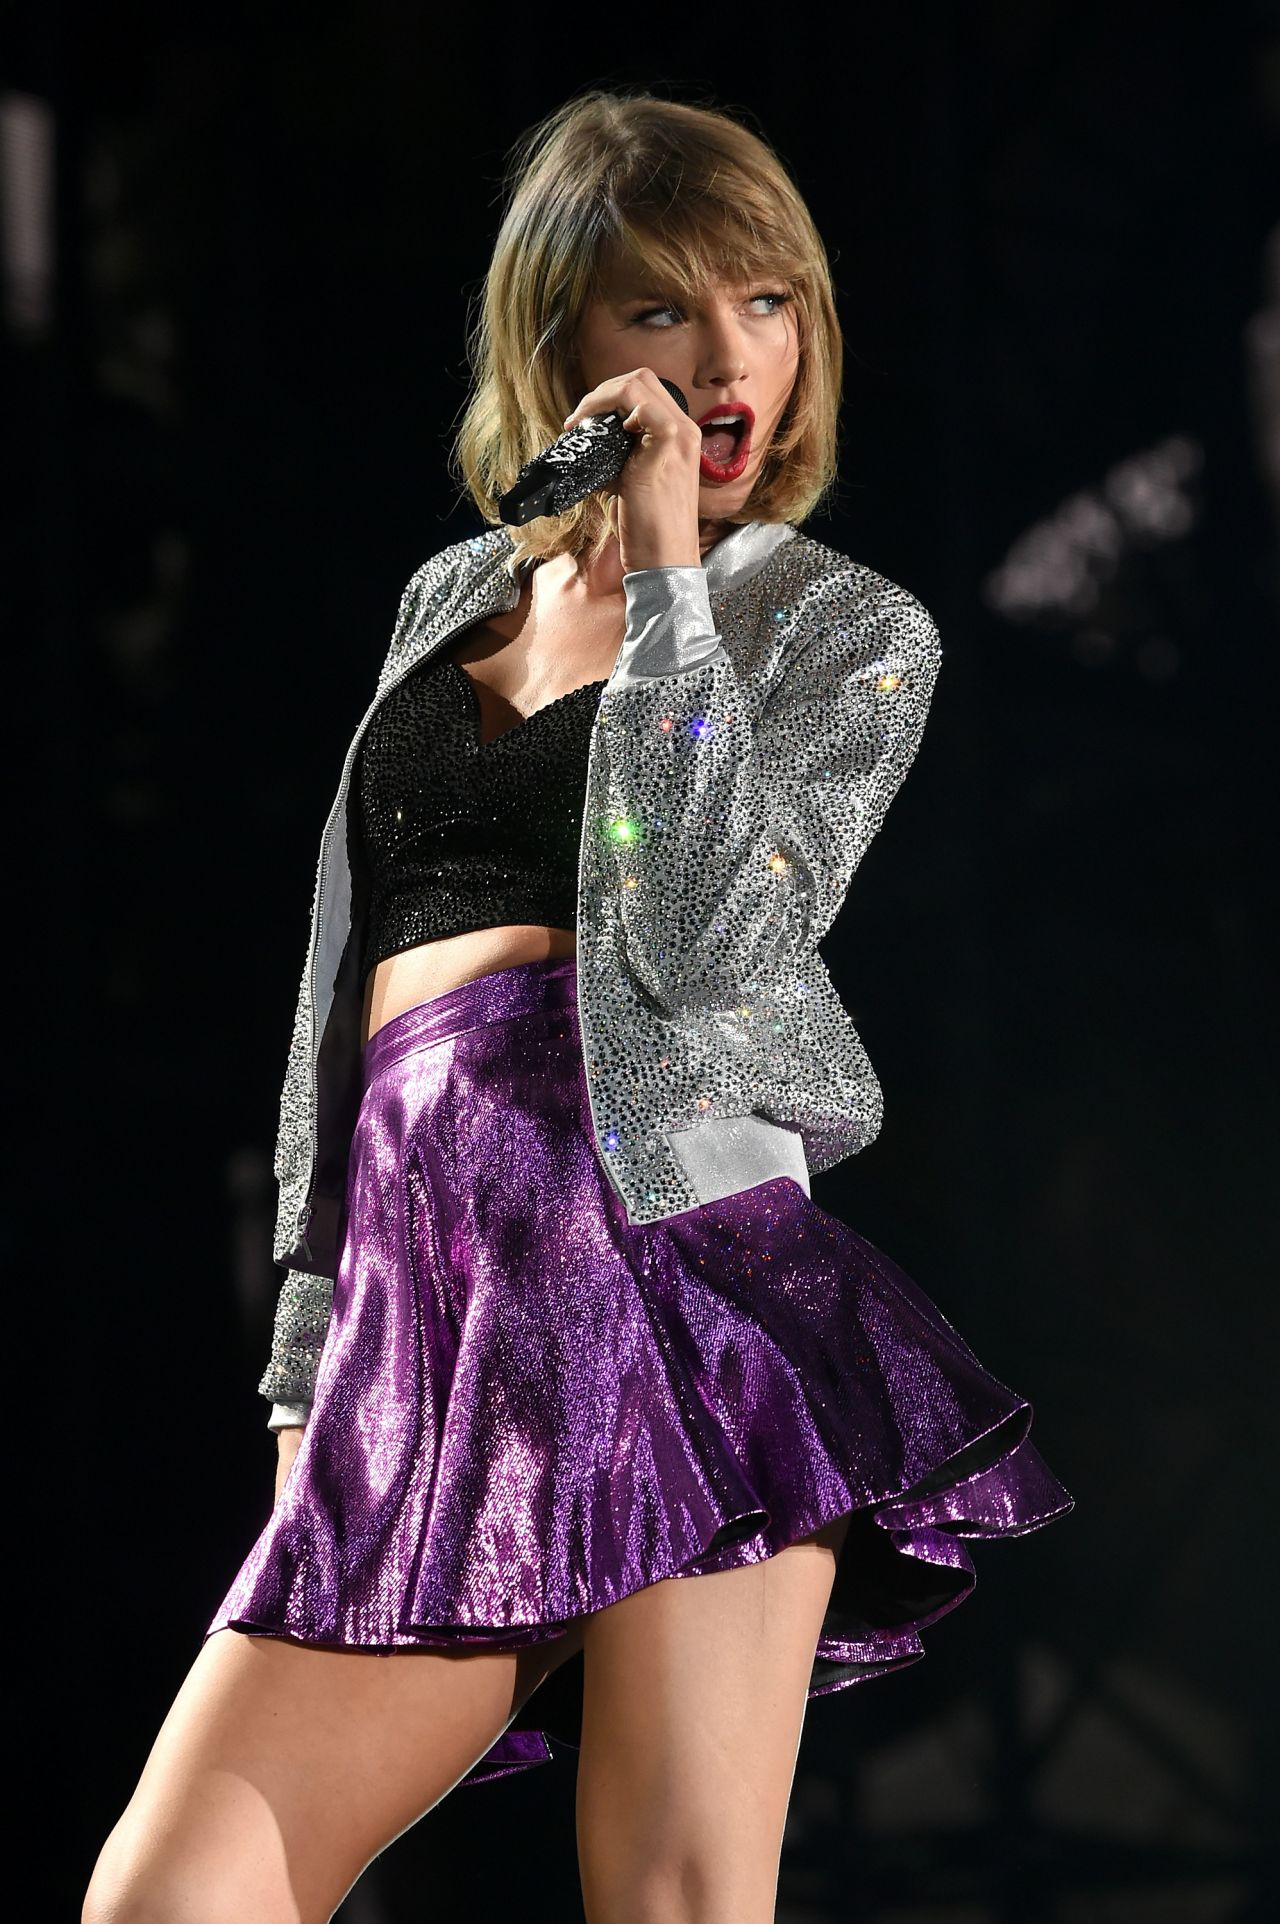 Taylor Swift Performing in Philadelphia, June 2015 - photo#37